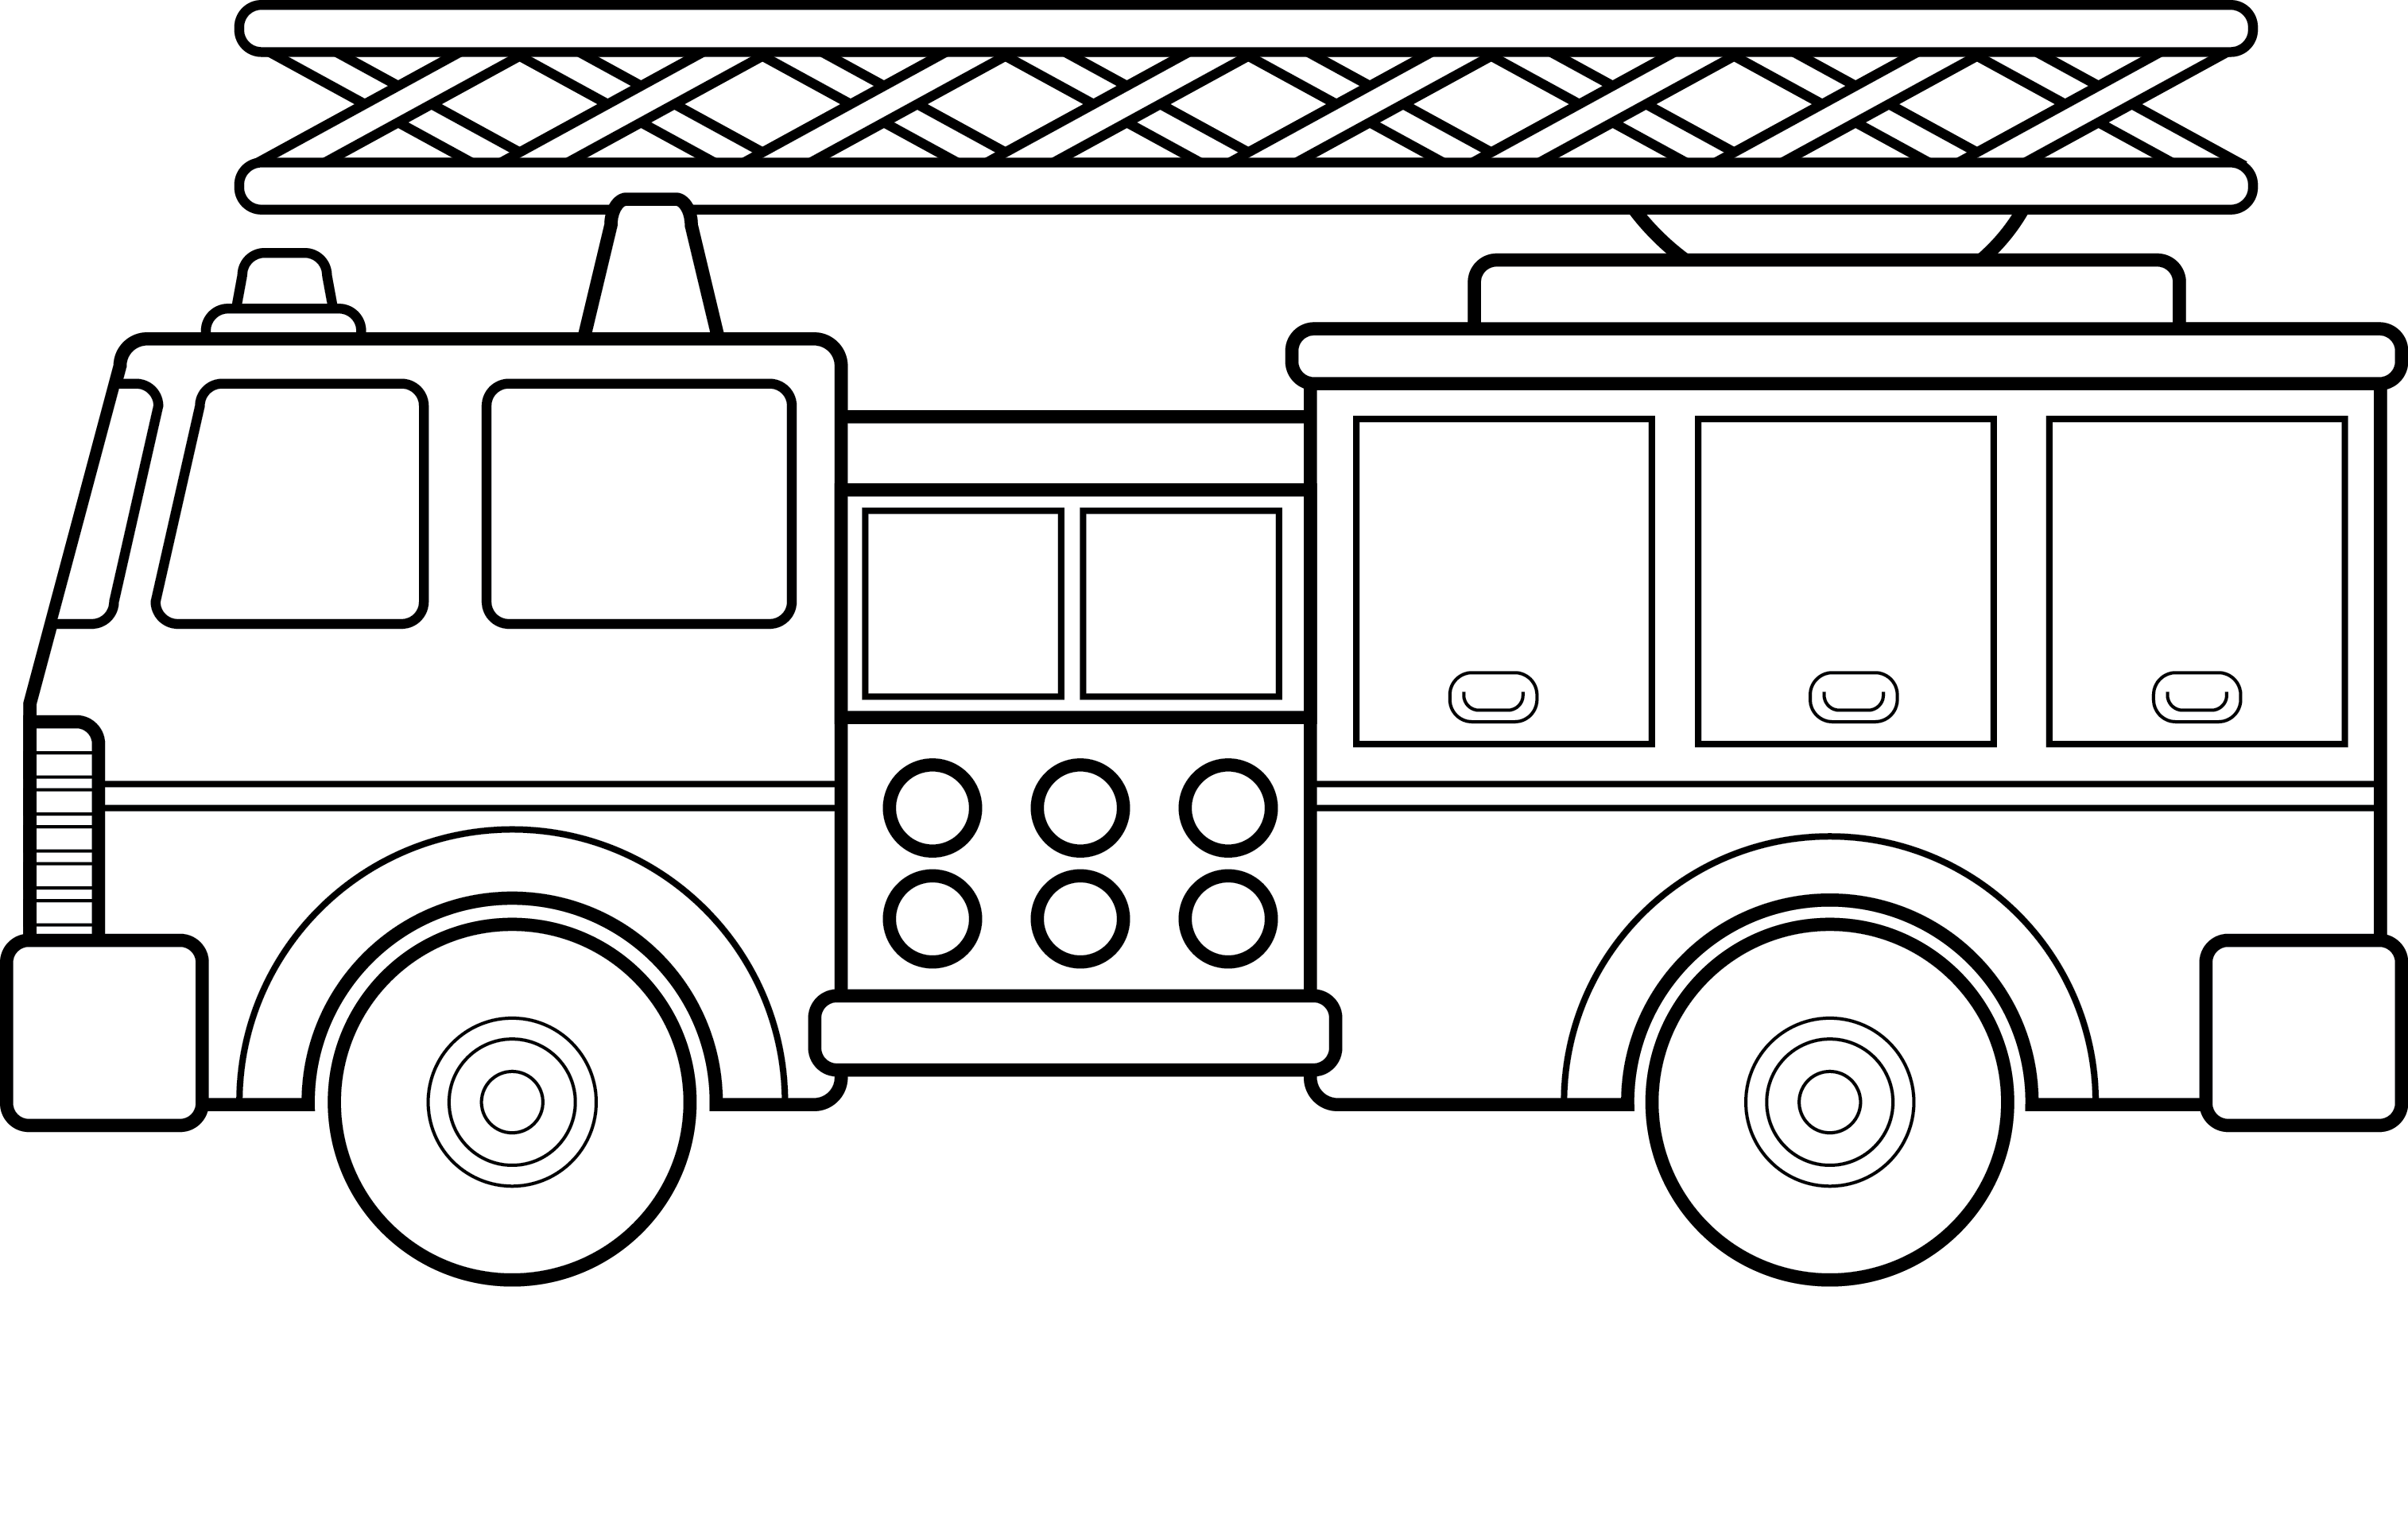 coloring pictures of cars and trucks chevrolet coloring pages to download and print for free pictures cars trucks of and coloring